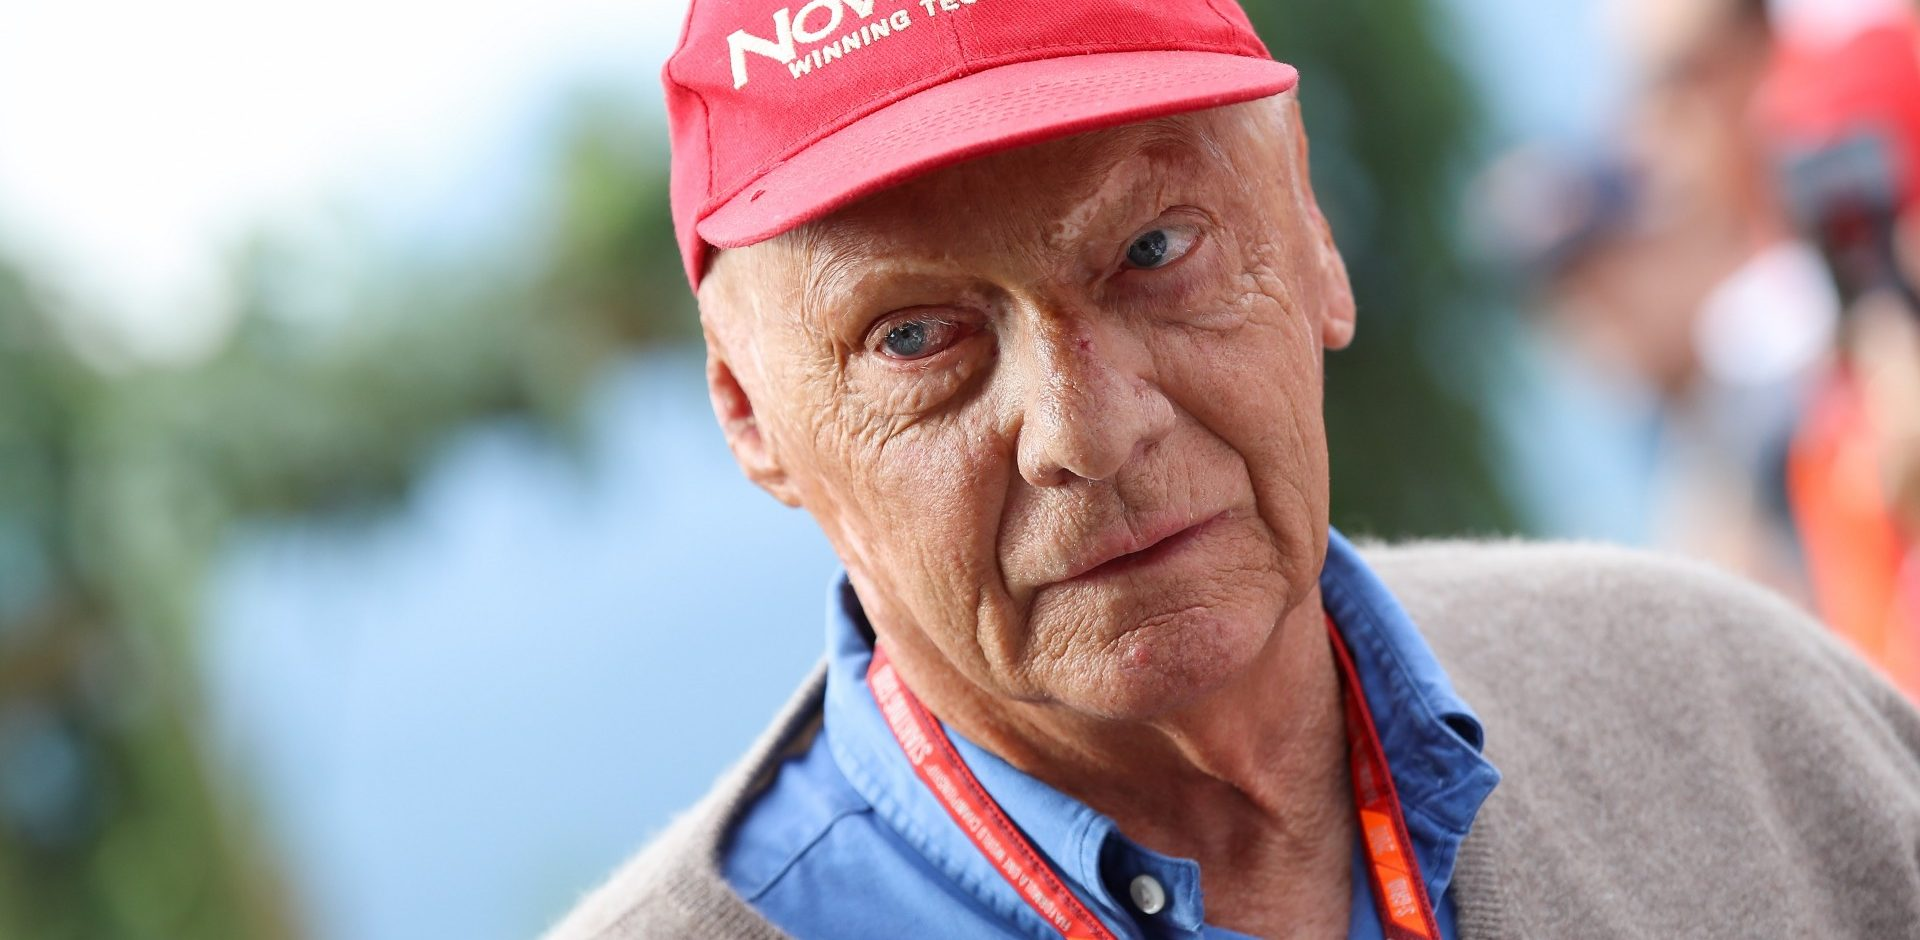 SPIELBERG,AUSTRIA,08.JUL.17 - MOTORSPORTS, FORMULA 1 - Grand Prix of Austria, Red Bull Ring, Styrian Green Carpet. Image shows  chairman of the advisory board Niki Lauda (Mercedes). Photo: GEPA pictures/ Christian Walgram - For editorial use only. Image is free of charge.